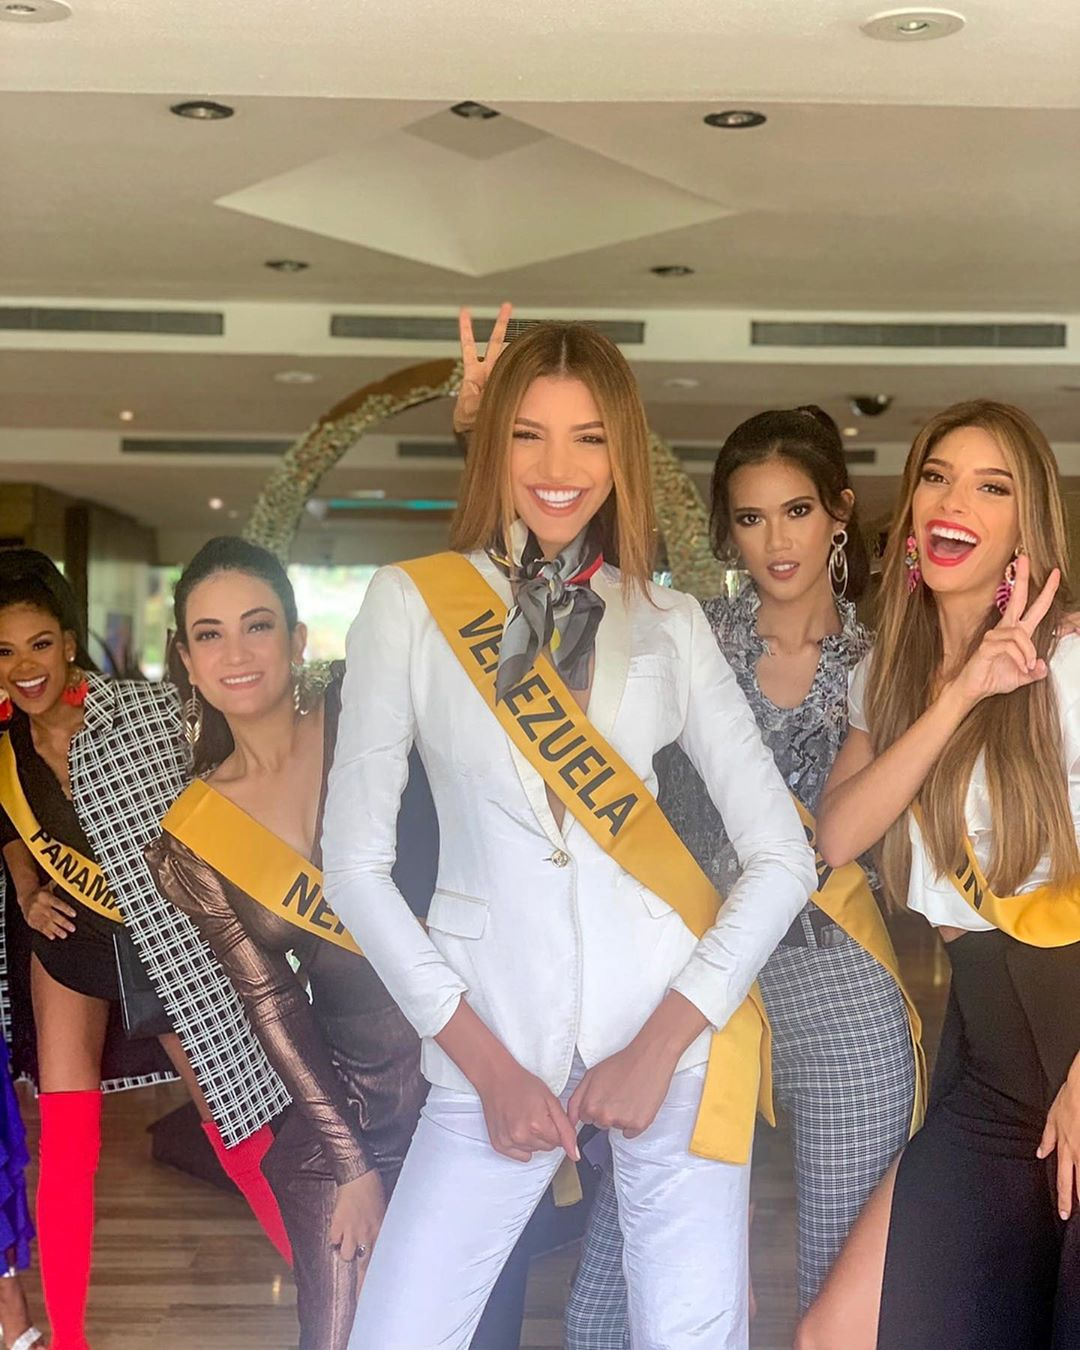 lourdes valentina figuera, miss grand international 2019. - Página 6 72399211